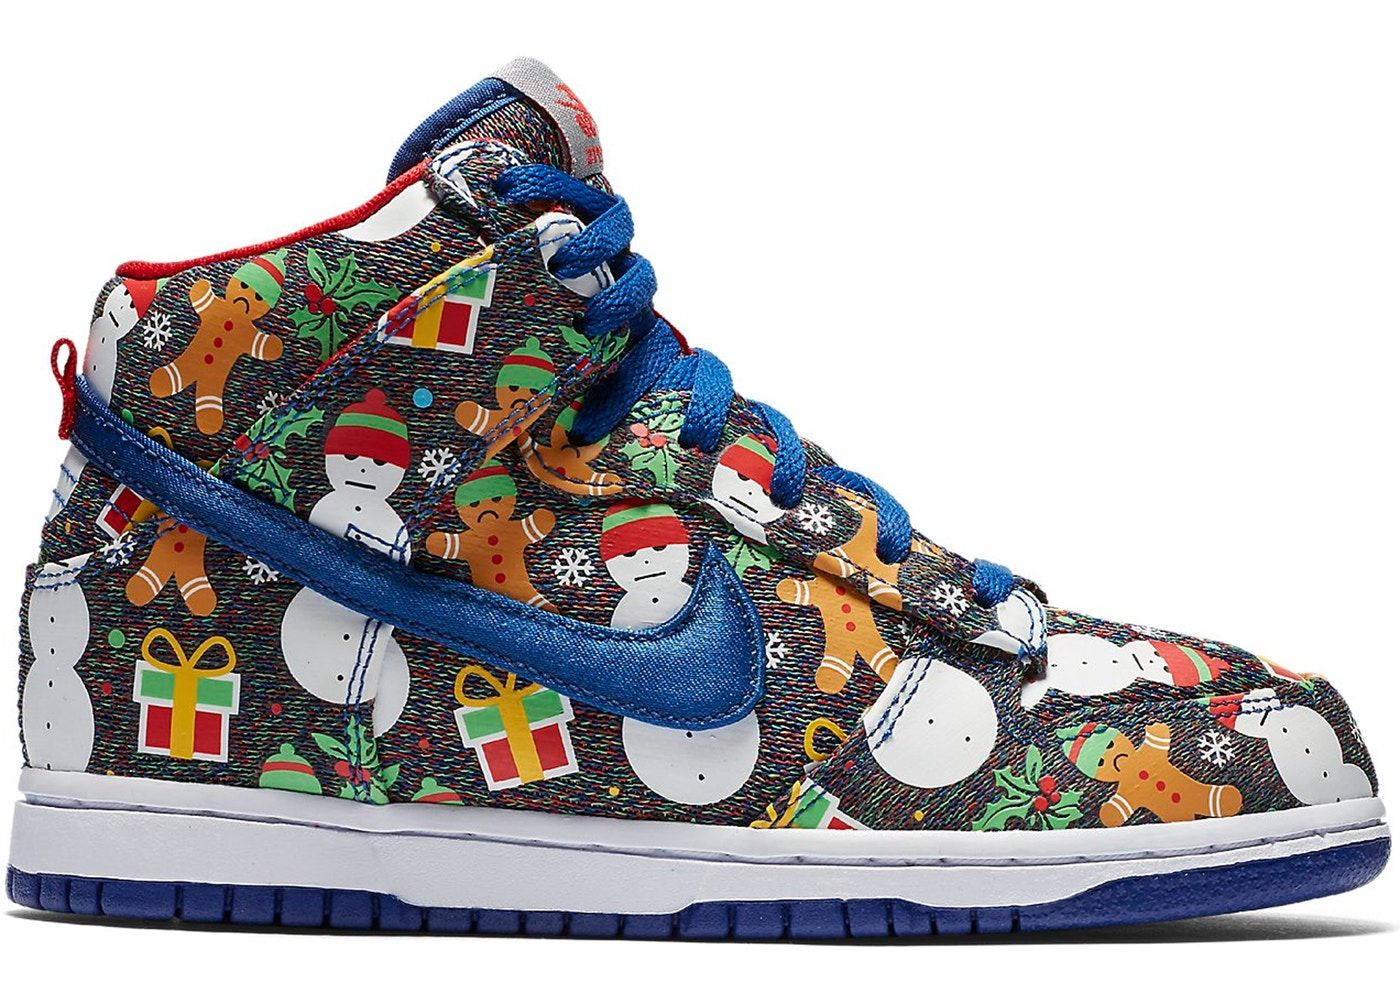 9cdb0f3d195 Nike SB Dunk High Concepts Ugly Christmas Sweater 2017 (PS ...